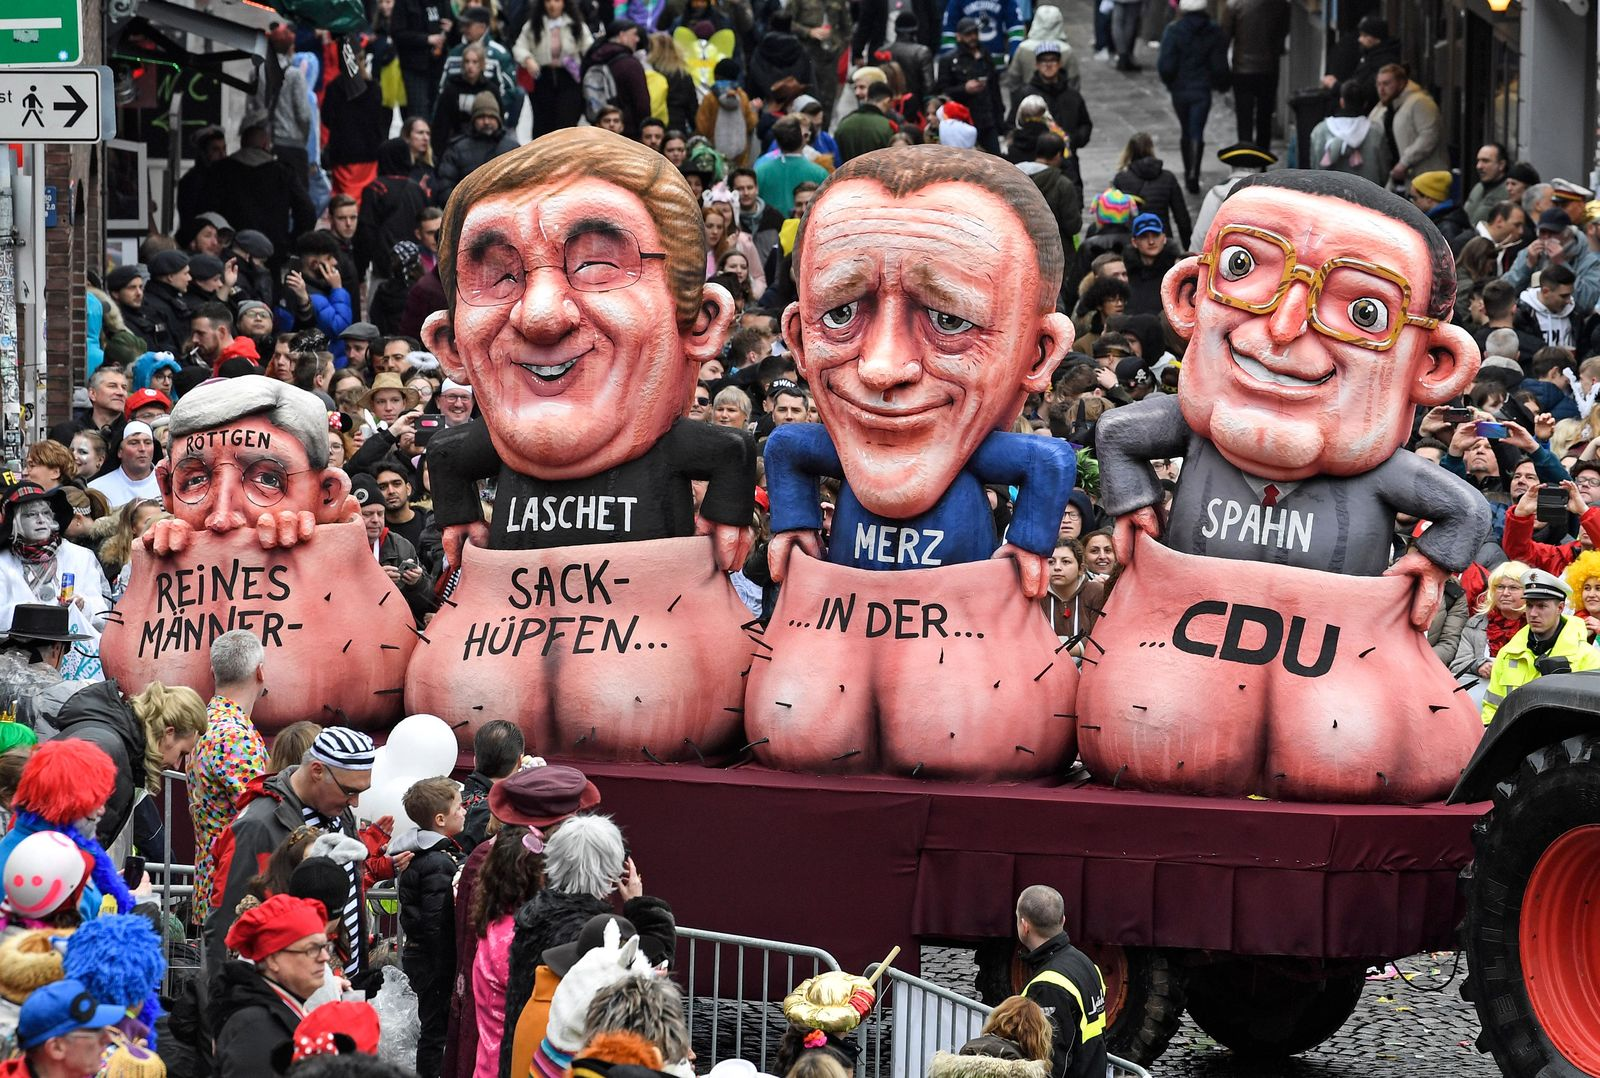 A carnival float depicts the candidates for the chairman of Merkel's Christian Democratic Union, CDU, during the traditional carnival parade in Duesseldorf, Germany, on Monday, Feb. 24, 2020. The foolish street spectacles in the carnival centers of Duesseldorf, Mainz and Cologne, watched by hundreds of thousands of people, are the highlights in Germany's carnival season on Rosemonday. (AP Photo/Martin Meissner)